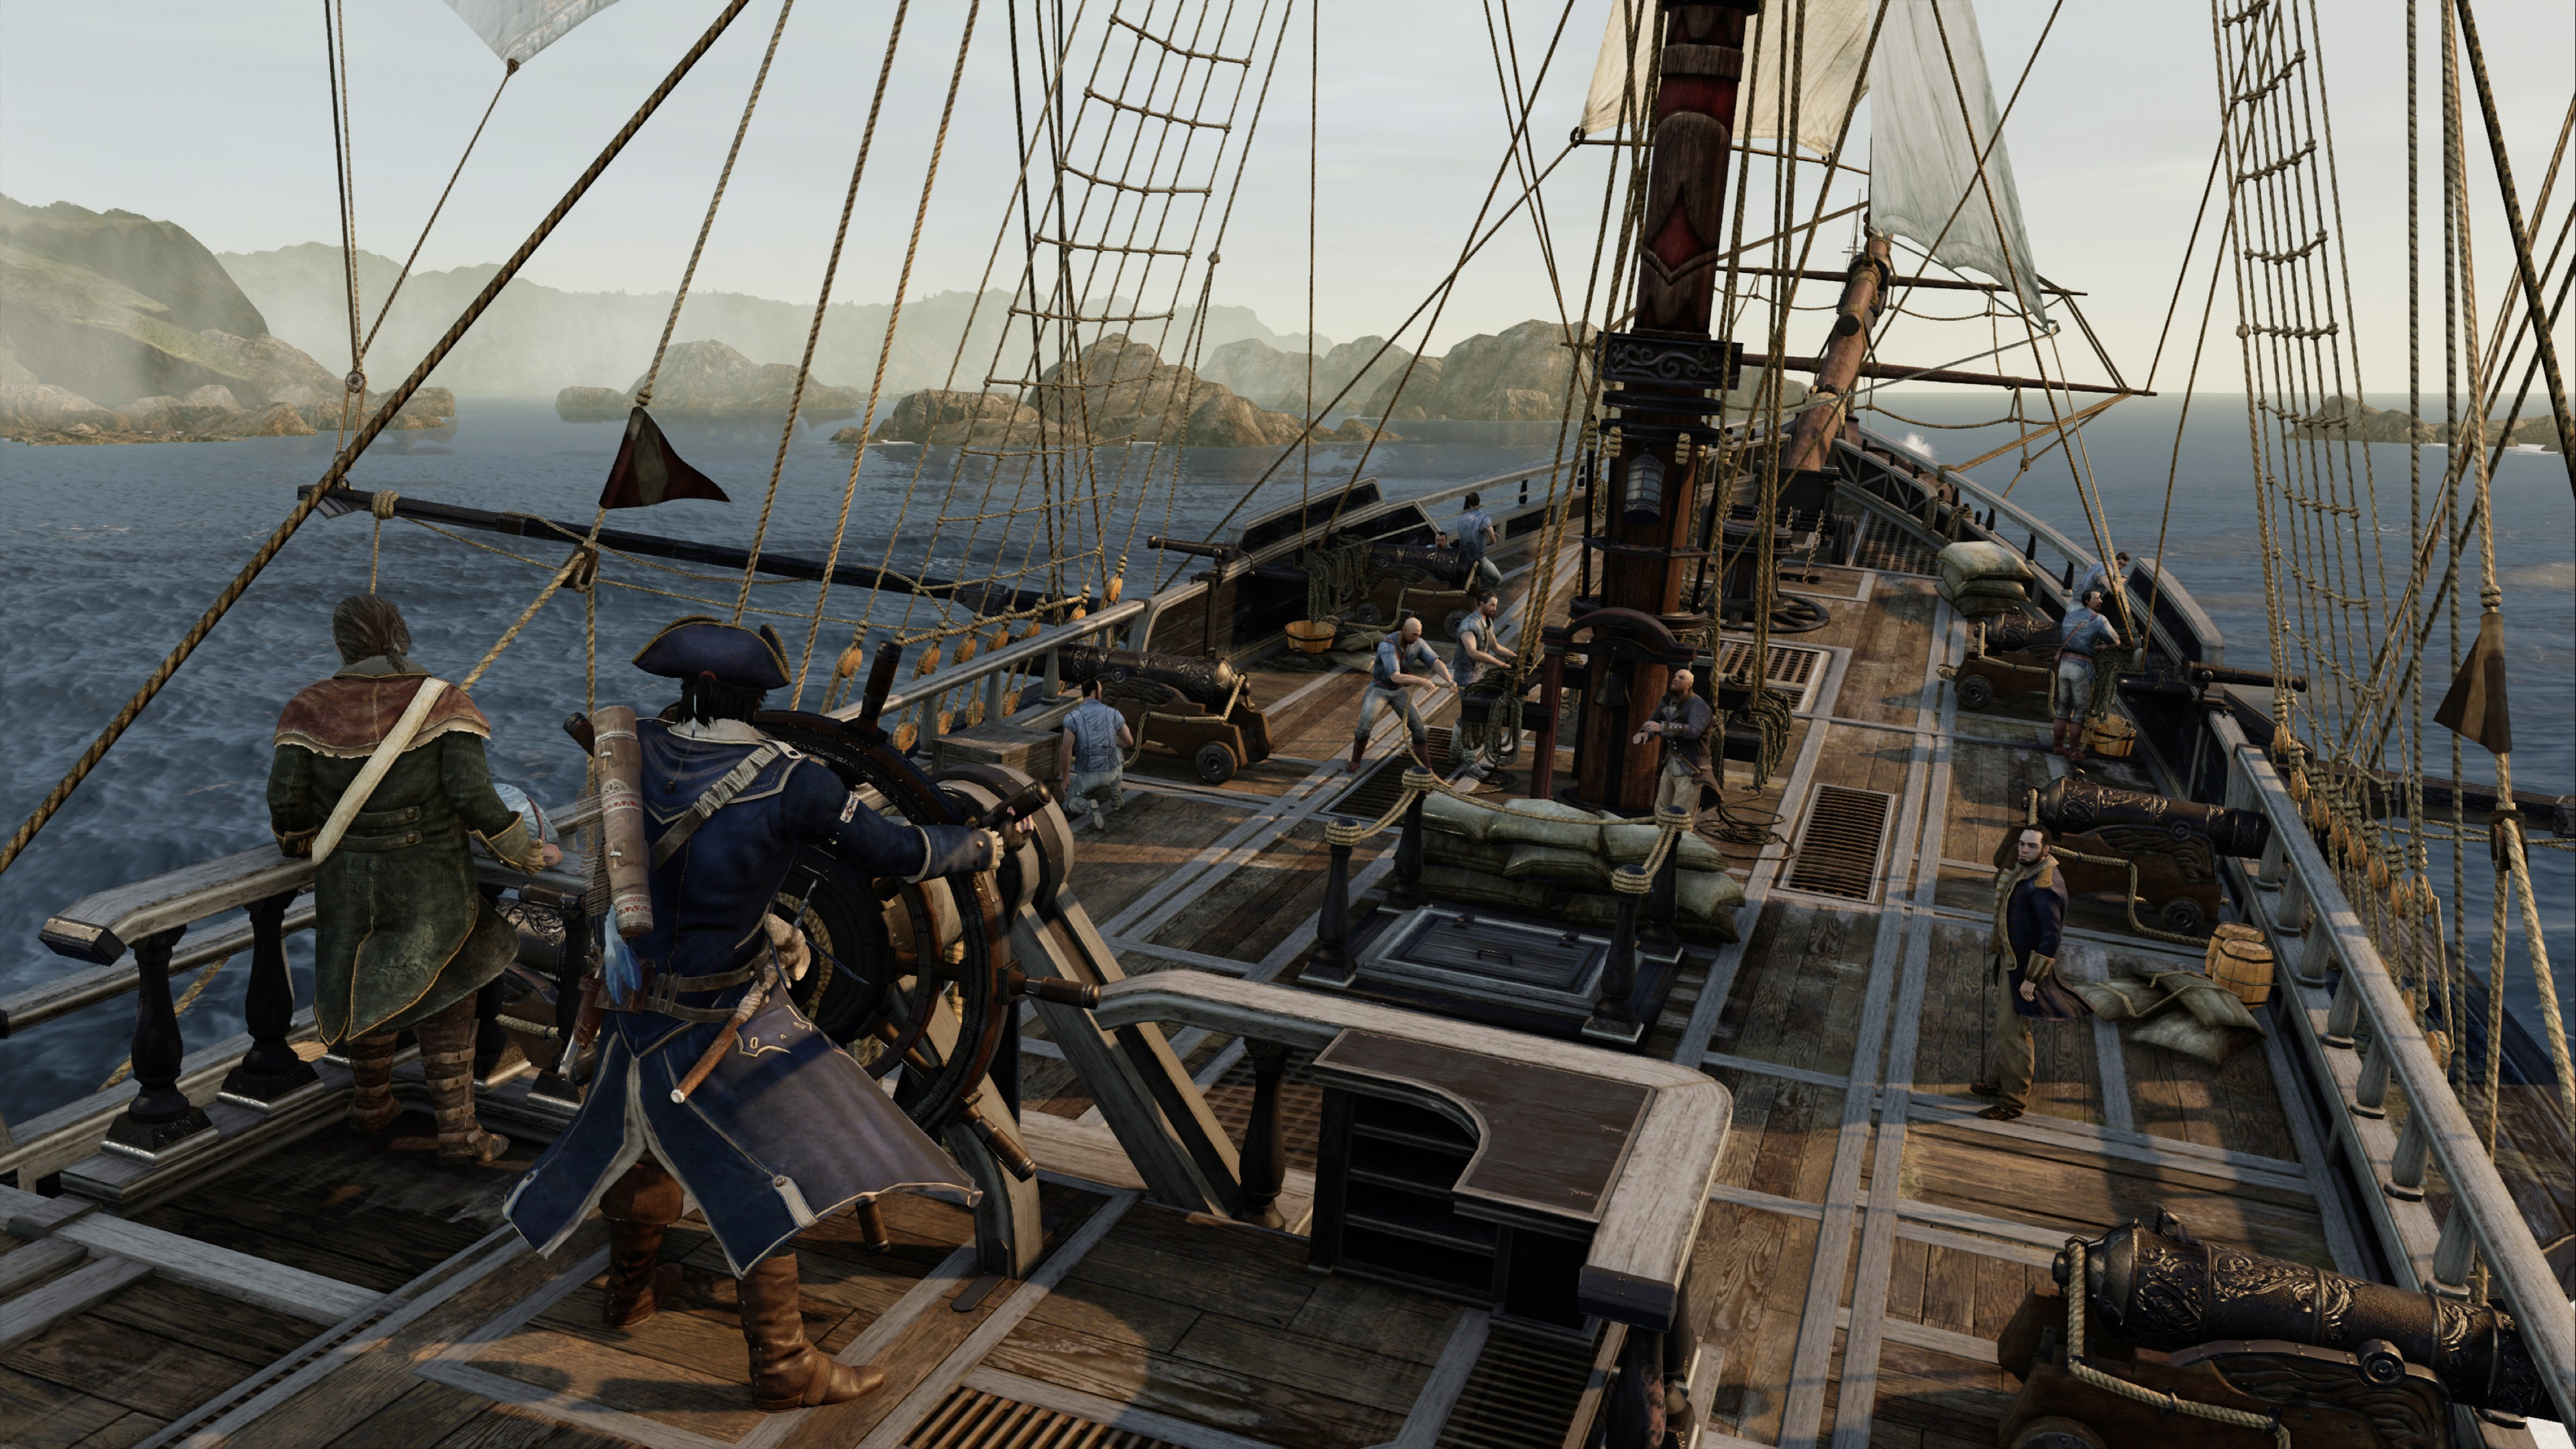 przeci assassins creed iii - HD 3840×2160